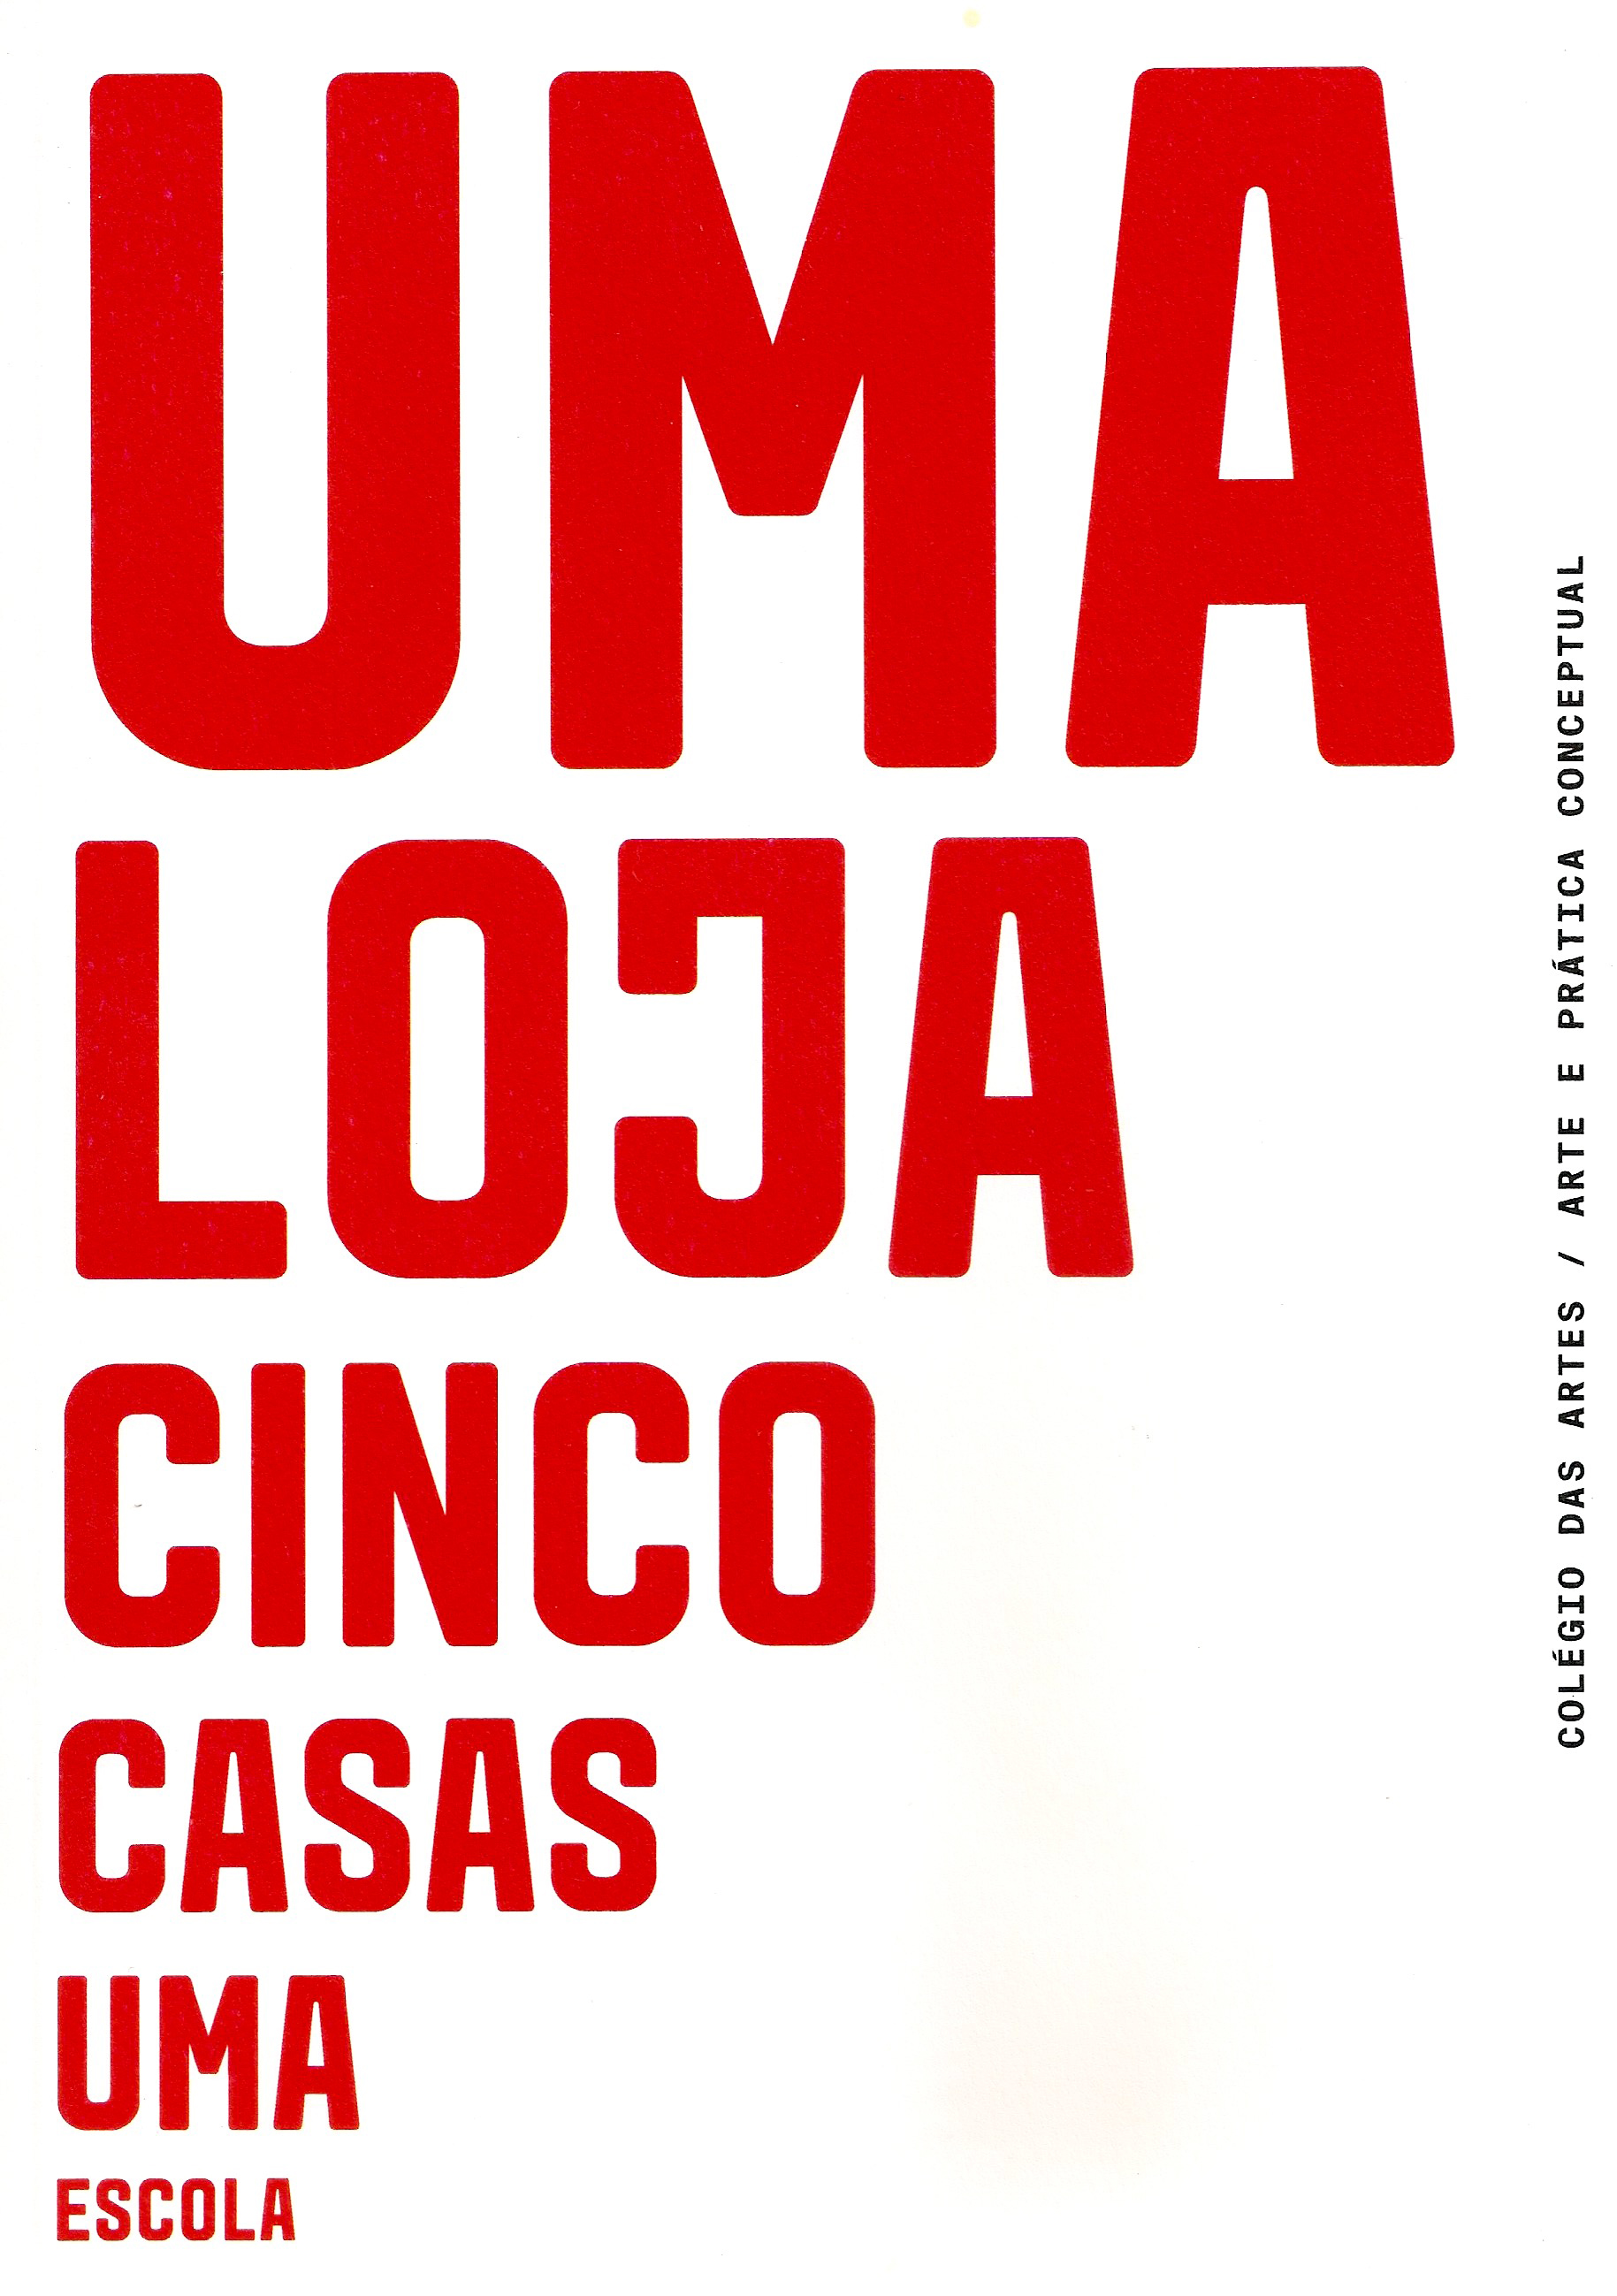 2019 - Catalog - Uma Loja, Cinco Casa, Uma EscolaExhibition organised by António Olaio, José Maçãs de Carvalho. Curated by João Fonte Santa. Catalog design by José Maria Cunha. Coimbra University, College of Arts, Ground Floor, 2019ISBN 978-989-54332-3-0